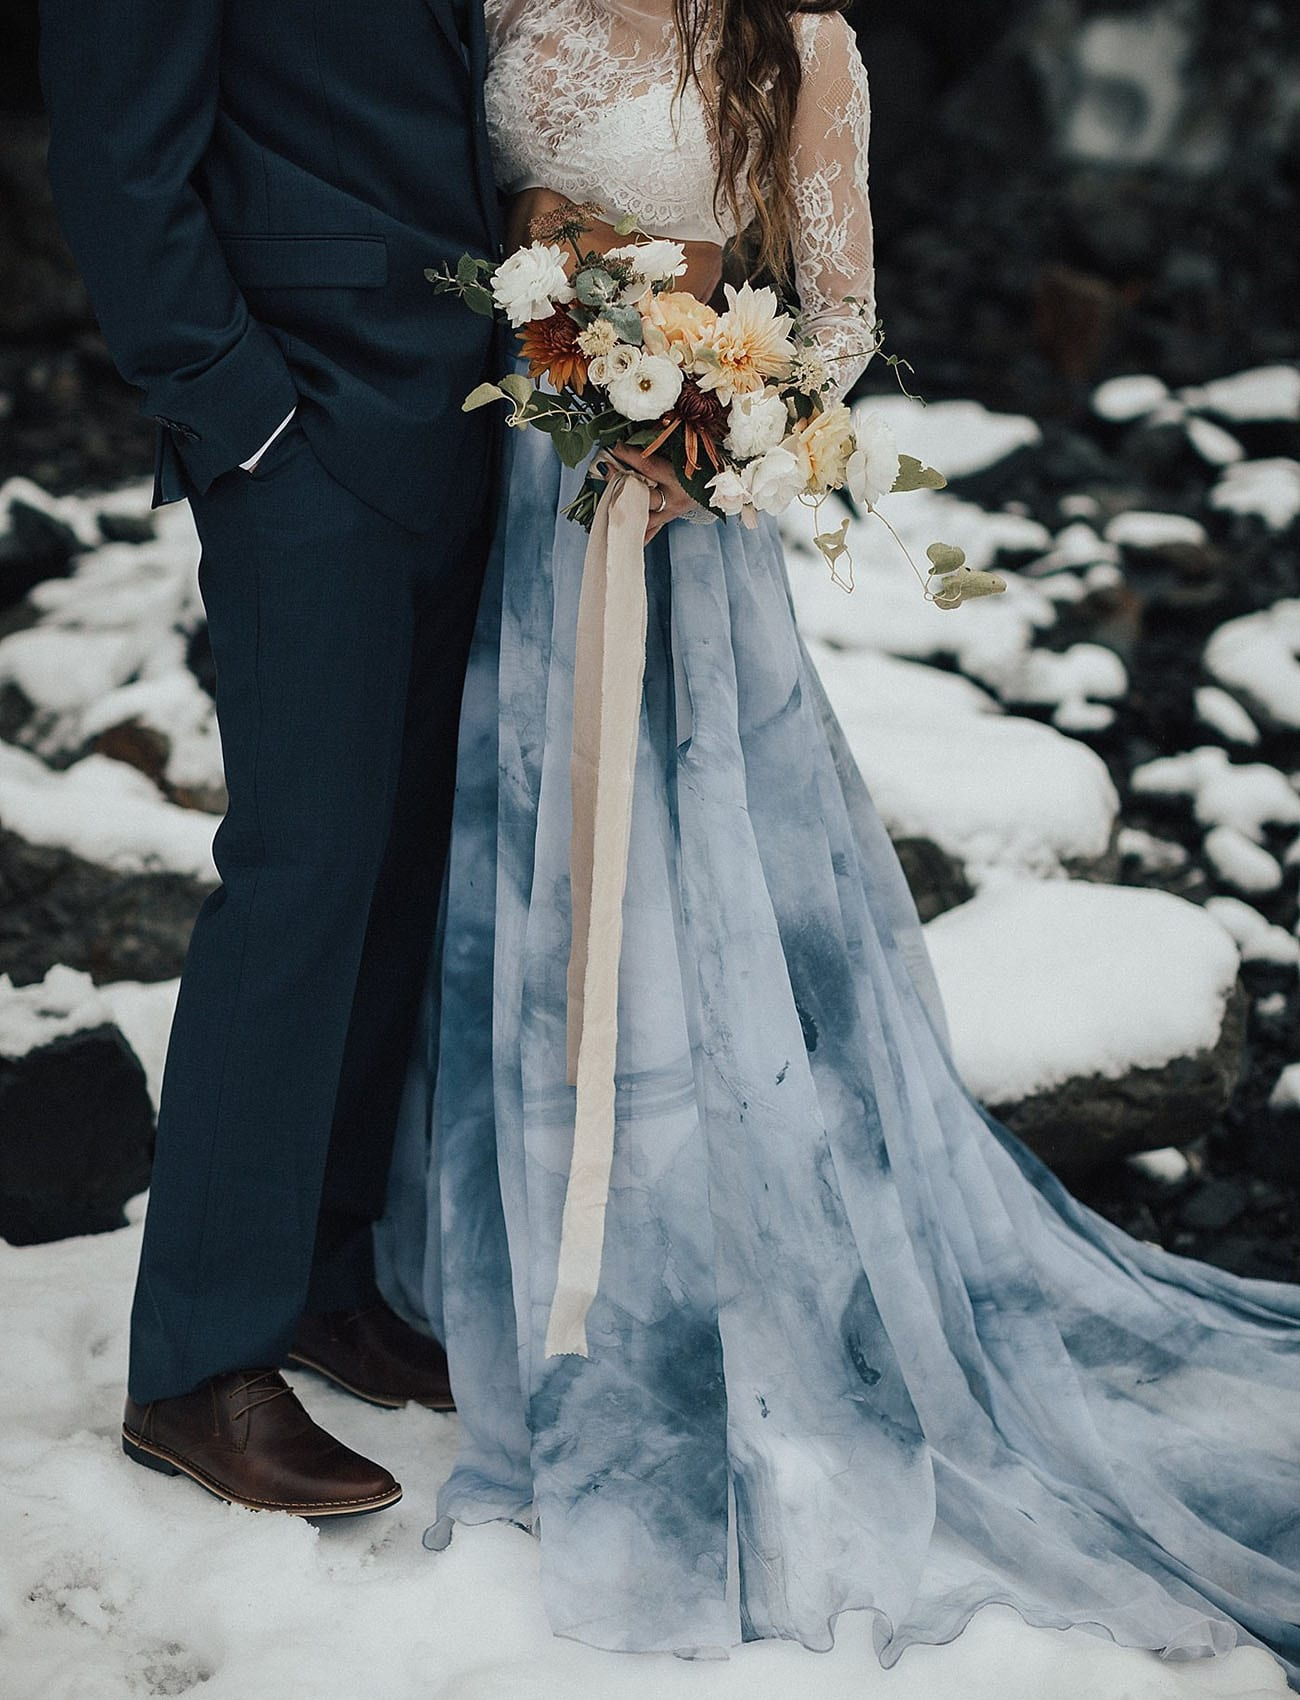 Winter Wonderland Christmas Wedding Ideas.30 Winter Wedding Ideas That Are Gorgeousaf A Practical